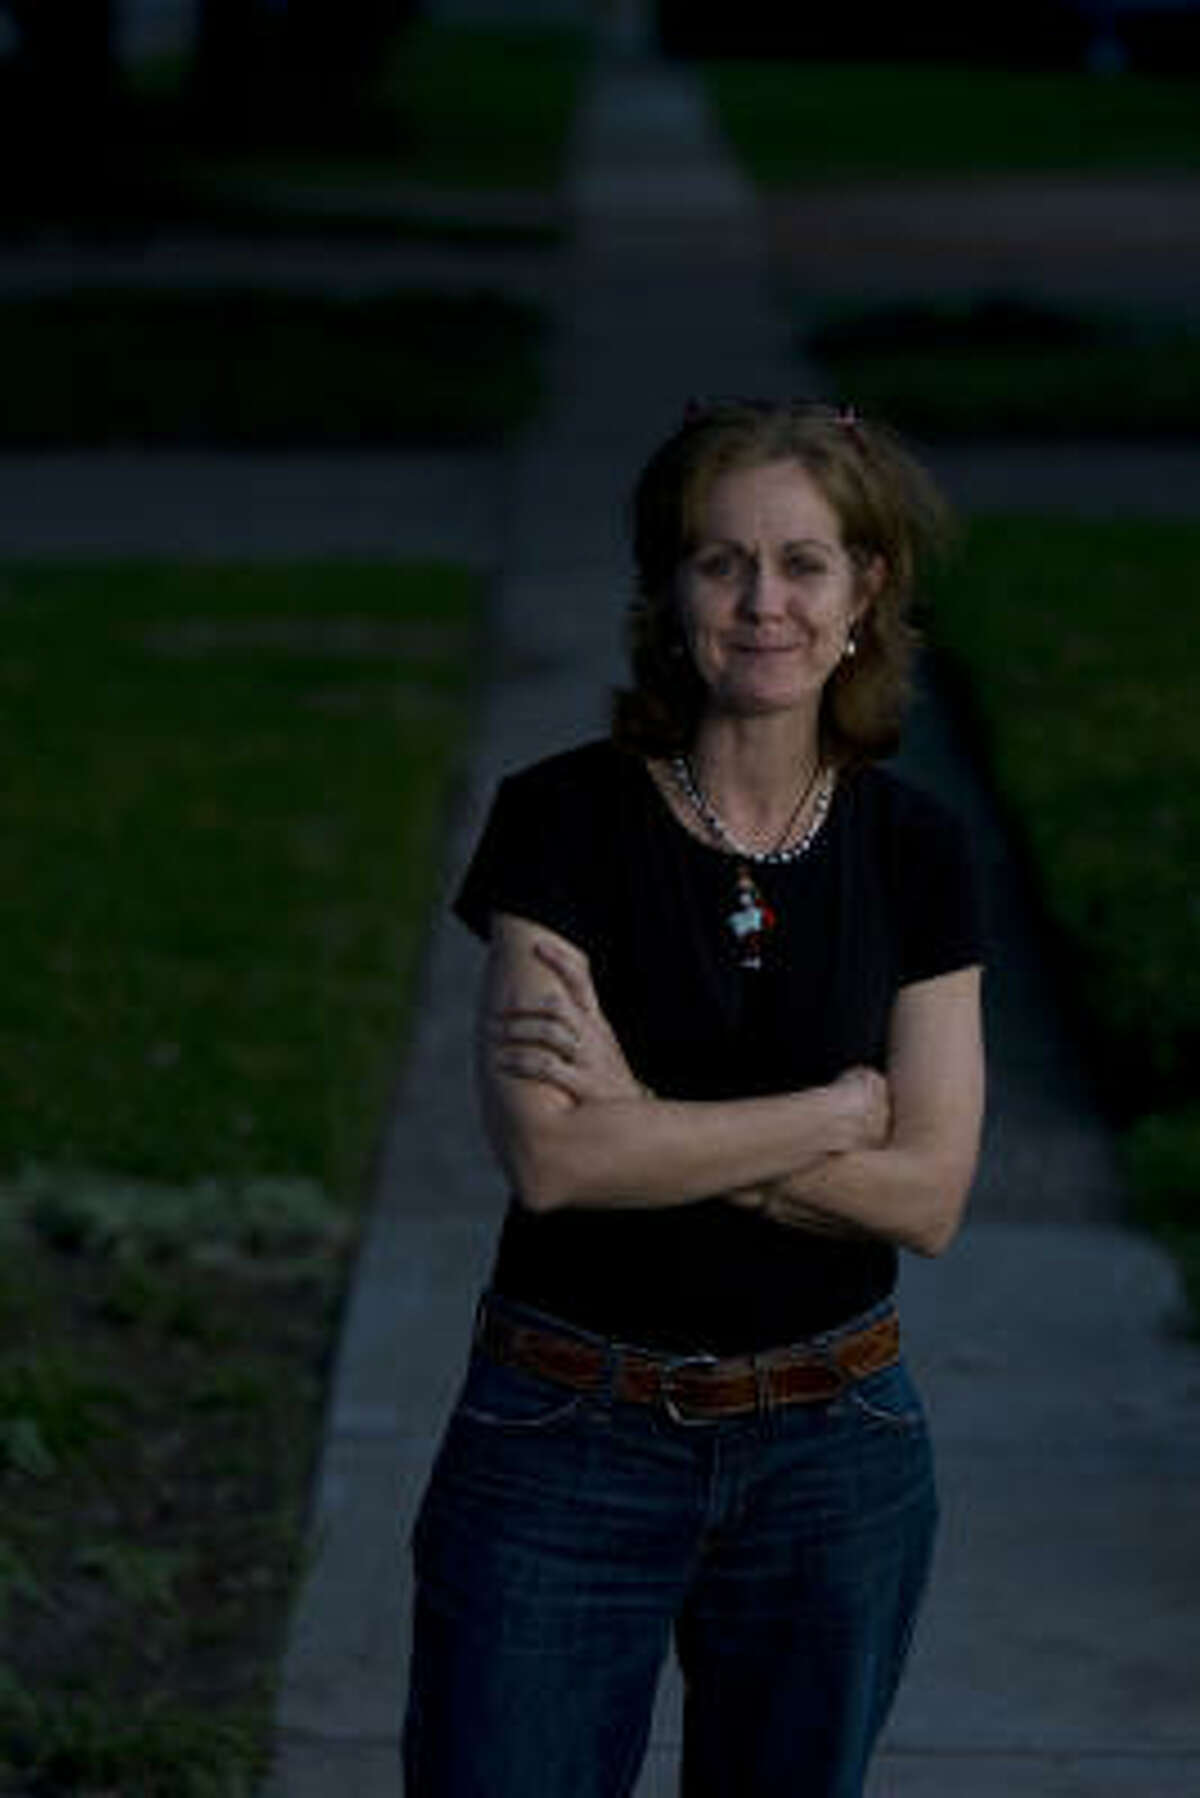 Mary Ellen Wolf, 50, was diagnosed with Attention-Deficit Hyperactivity Disorder (ADHD) five years ago.